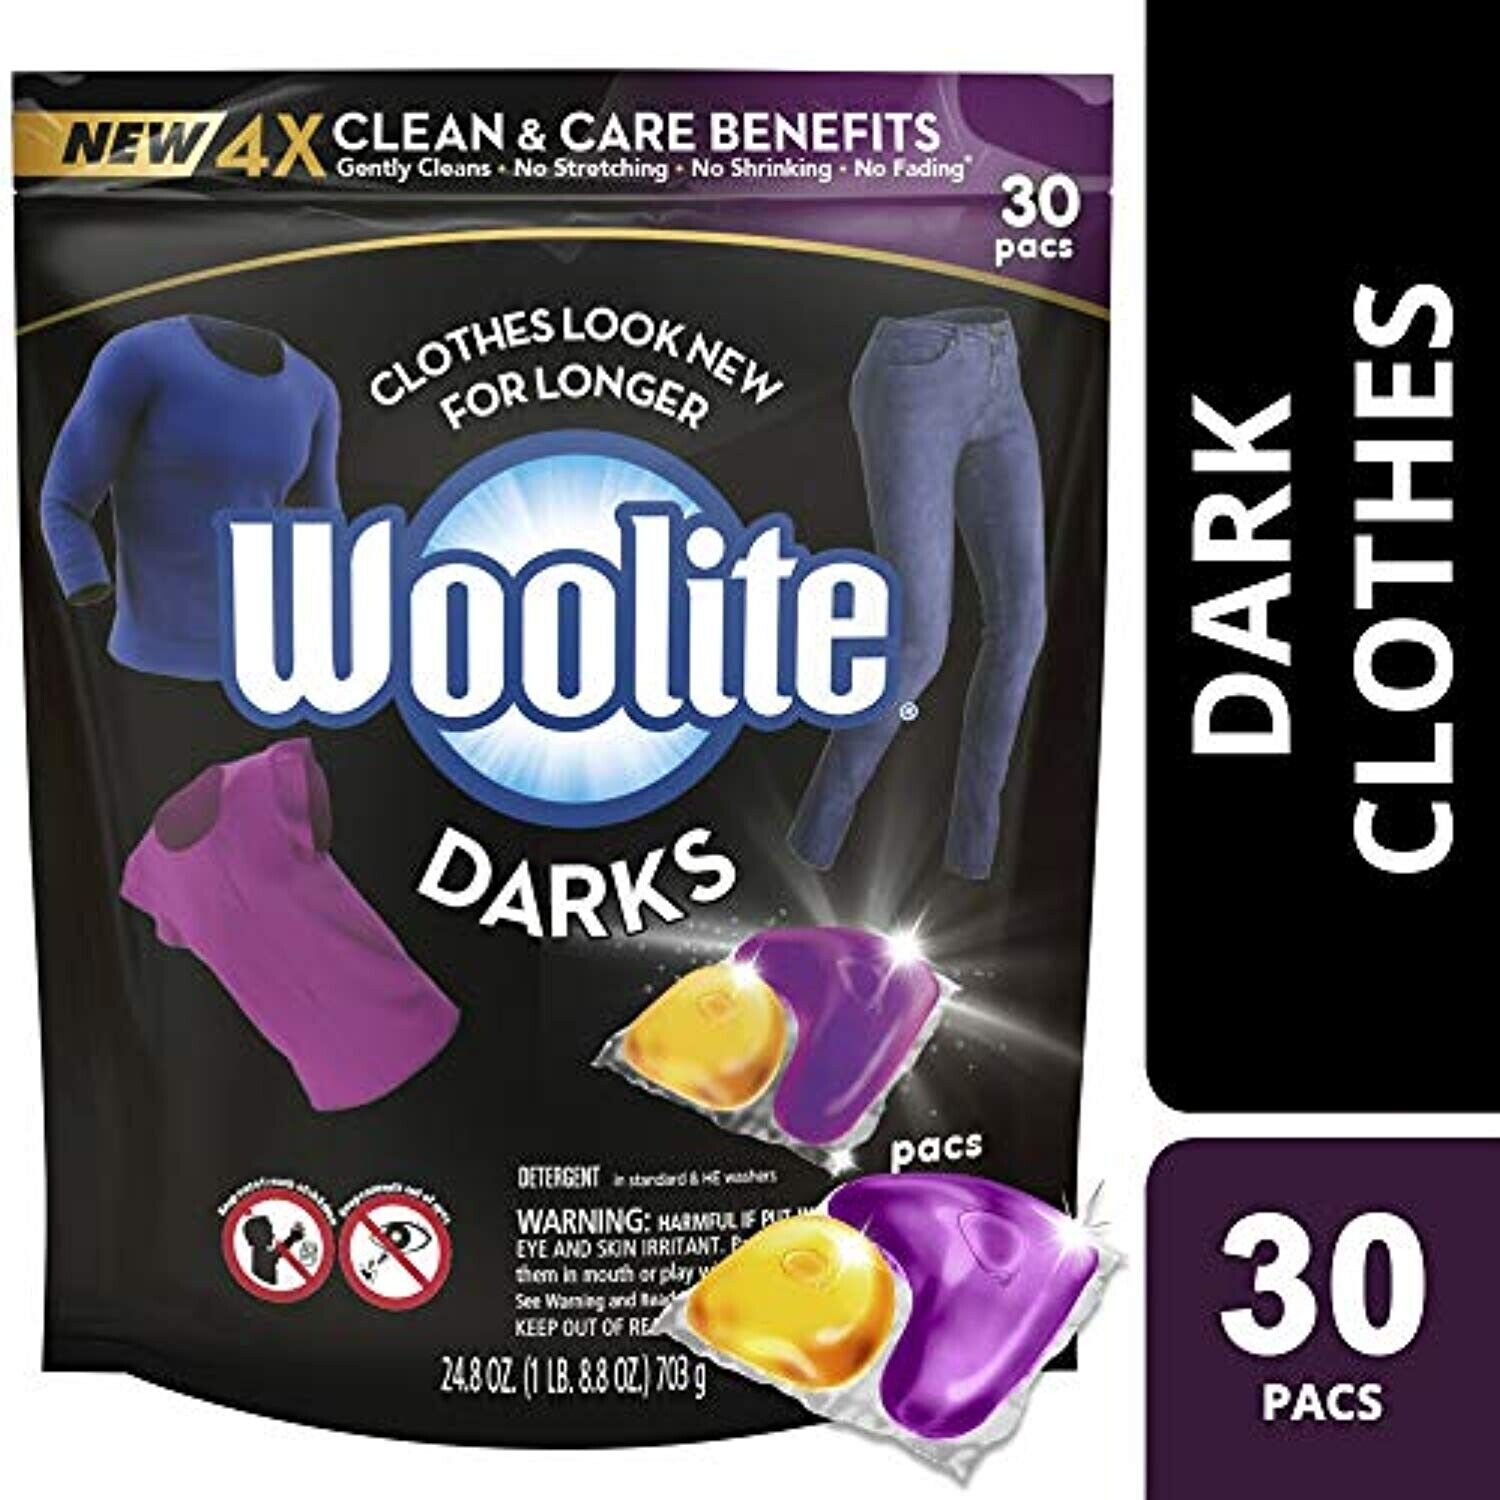 Woolite Darks Pacs,Laundry Detergent Pacs, 30 Count, for Standard and HE Washers Detergents, Softeners & Stain Removers